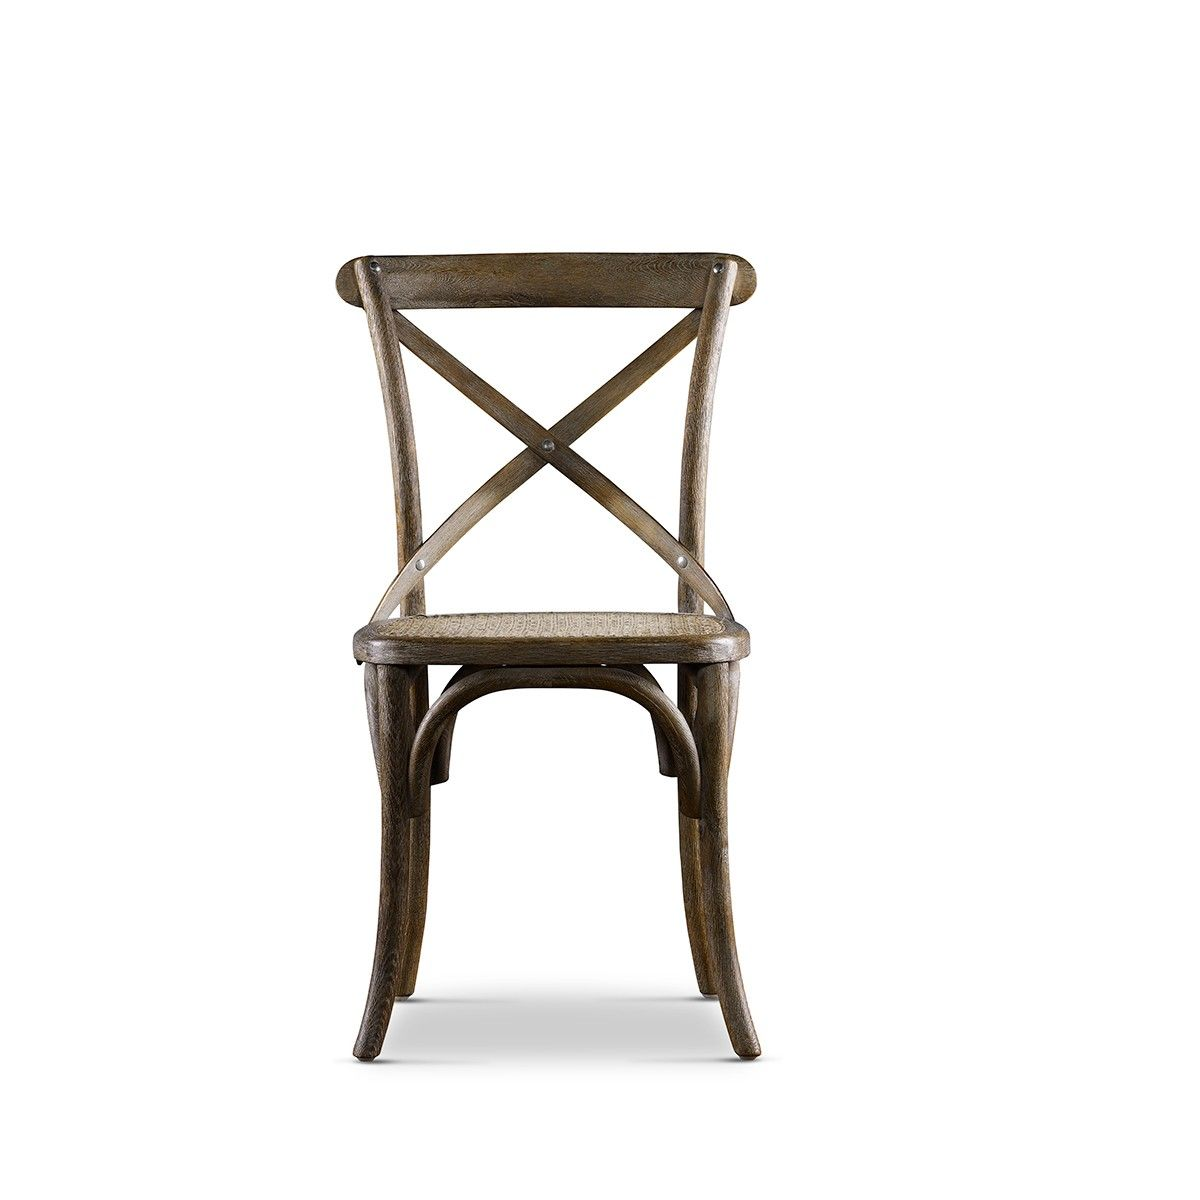 FARMHOUSE SIDE CHAIR Curations Limited Dining chairs